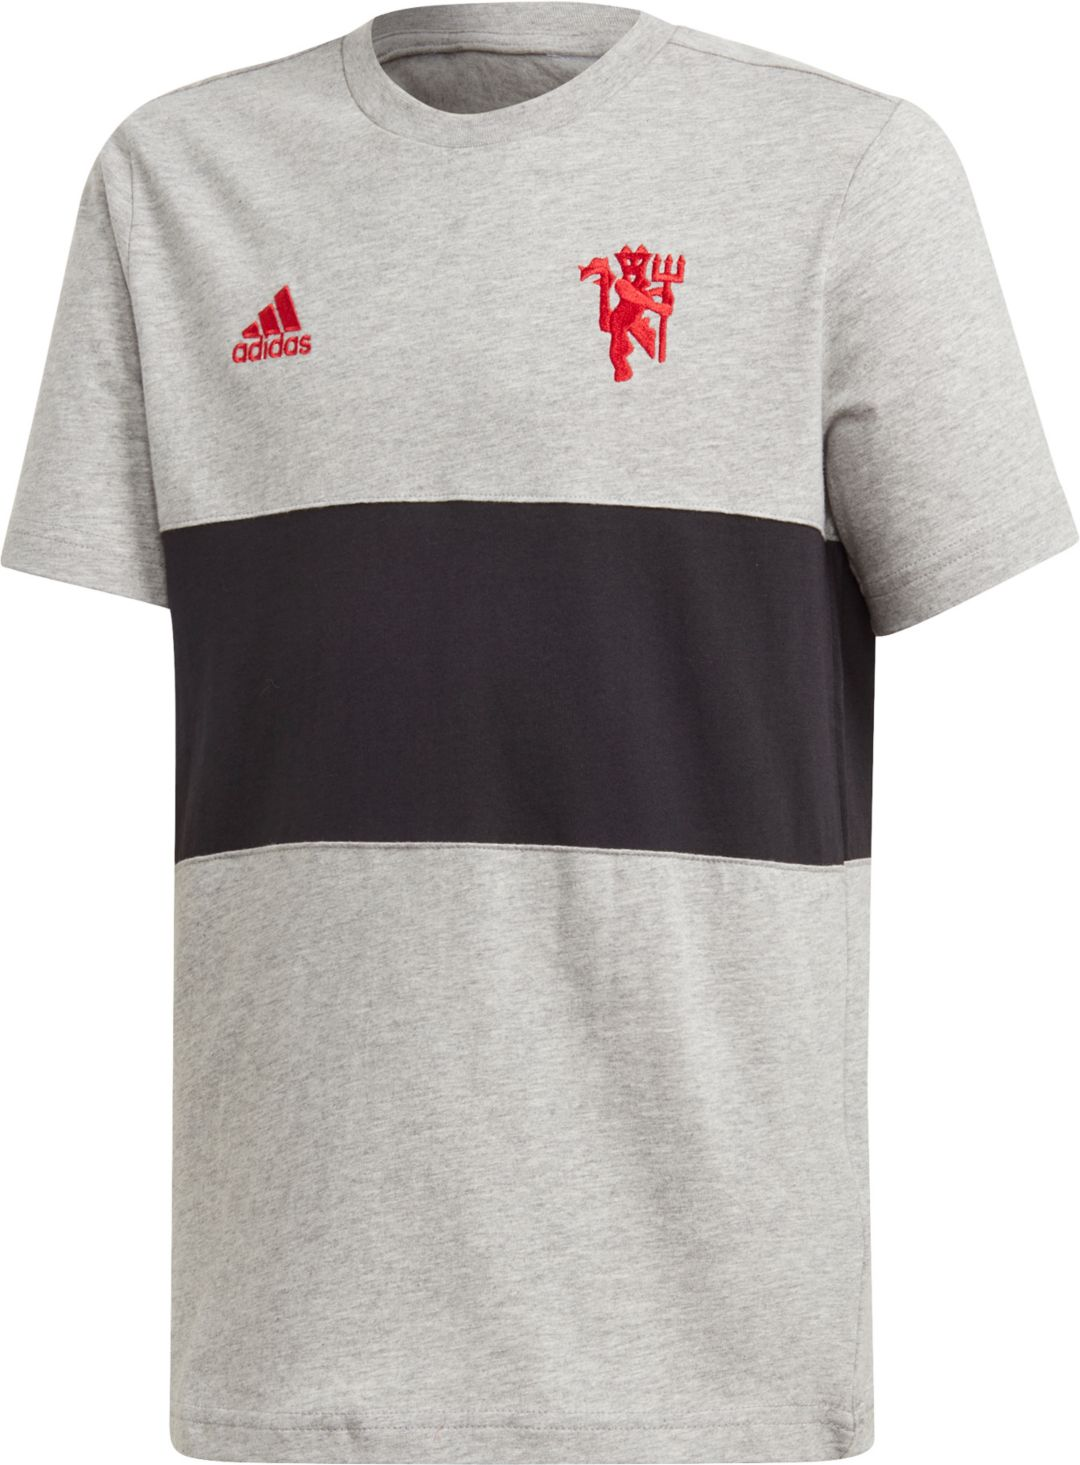 Adidas Youth Manchester United Dna Graphic Heather Grey T Shirt